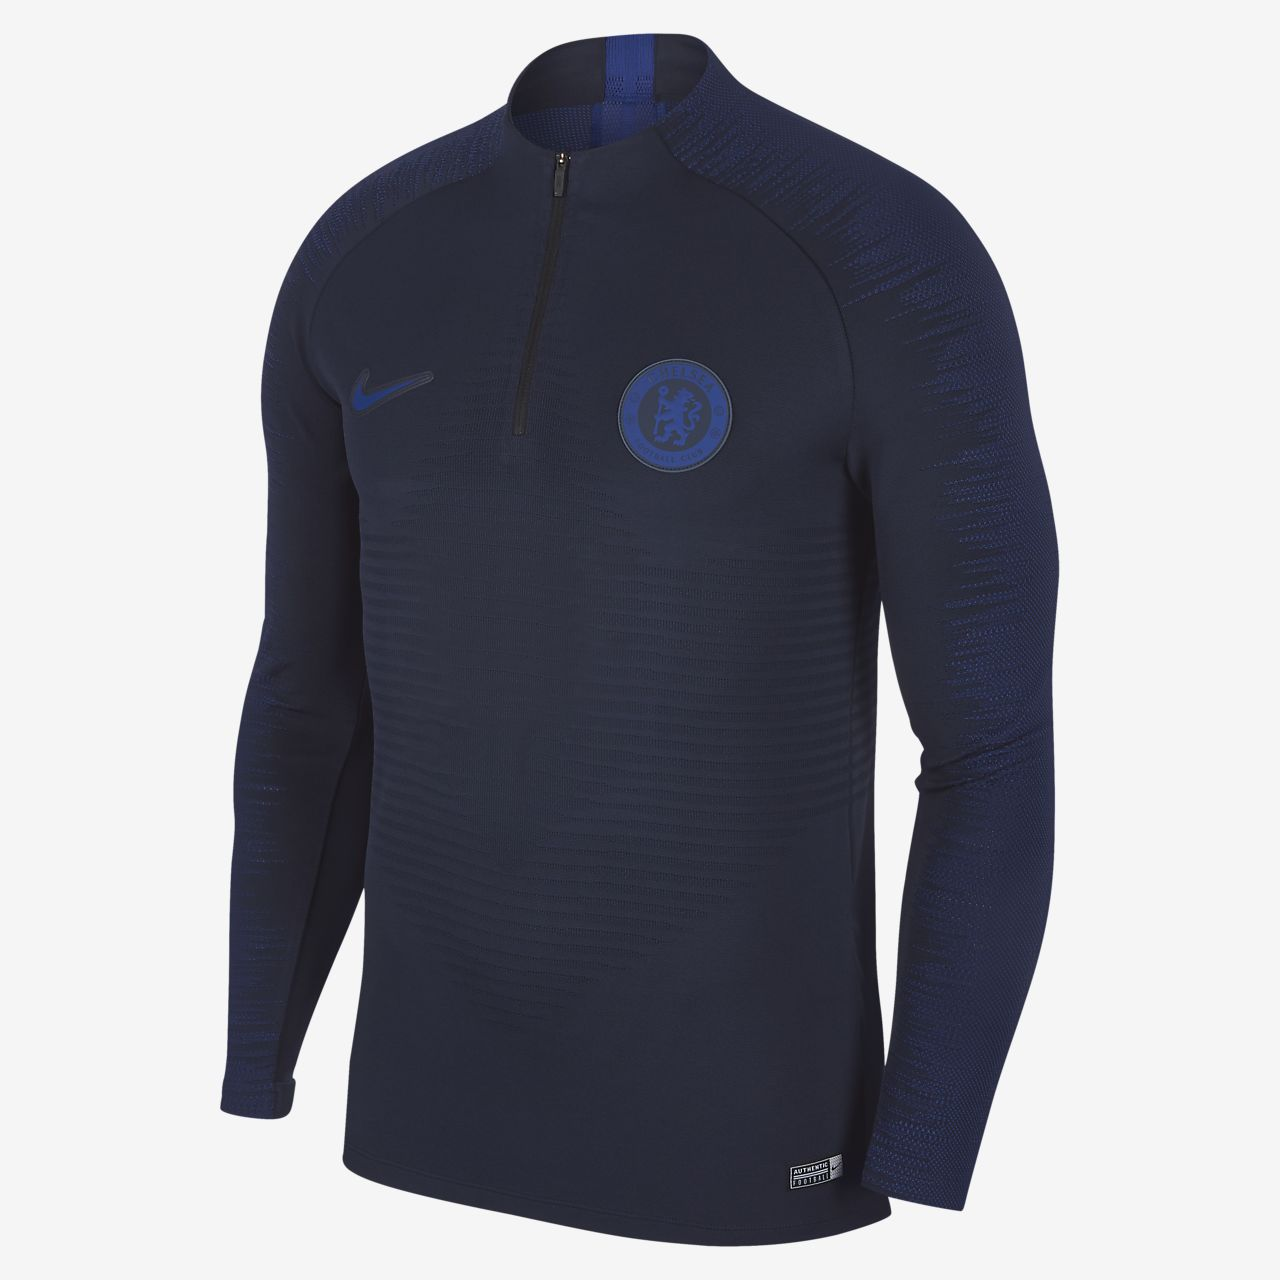 low priced dfae5 5f023 Nike VaporKnit Chelsea FC Strike Men's Football Drill Top